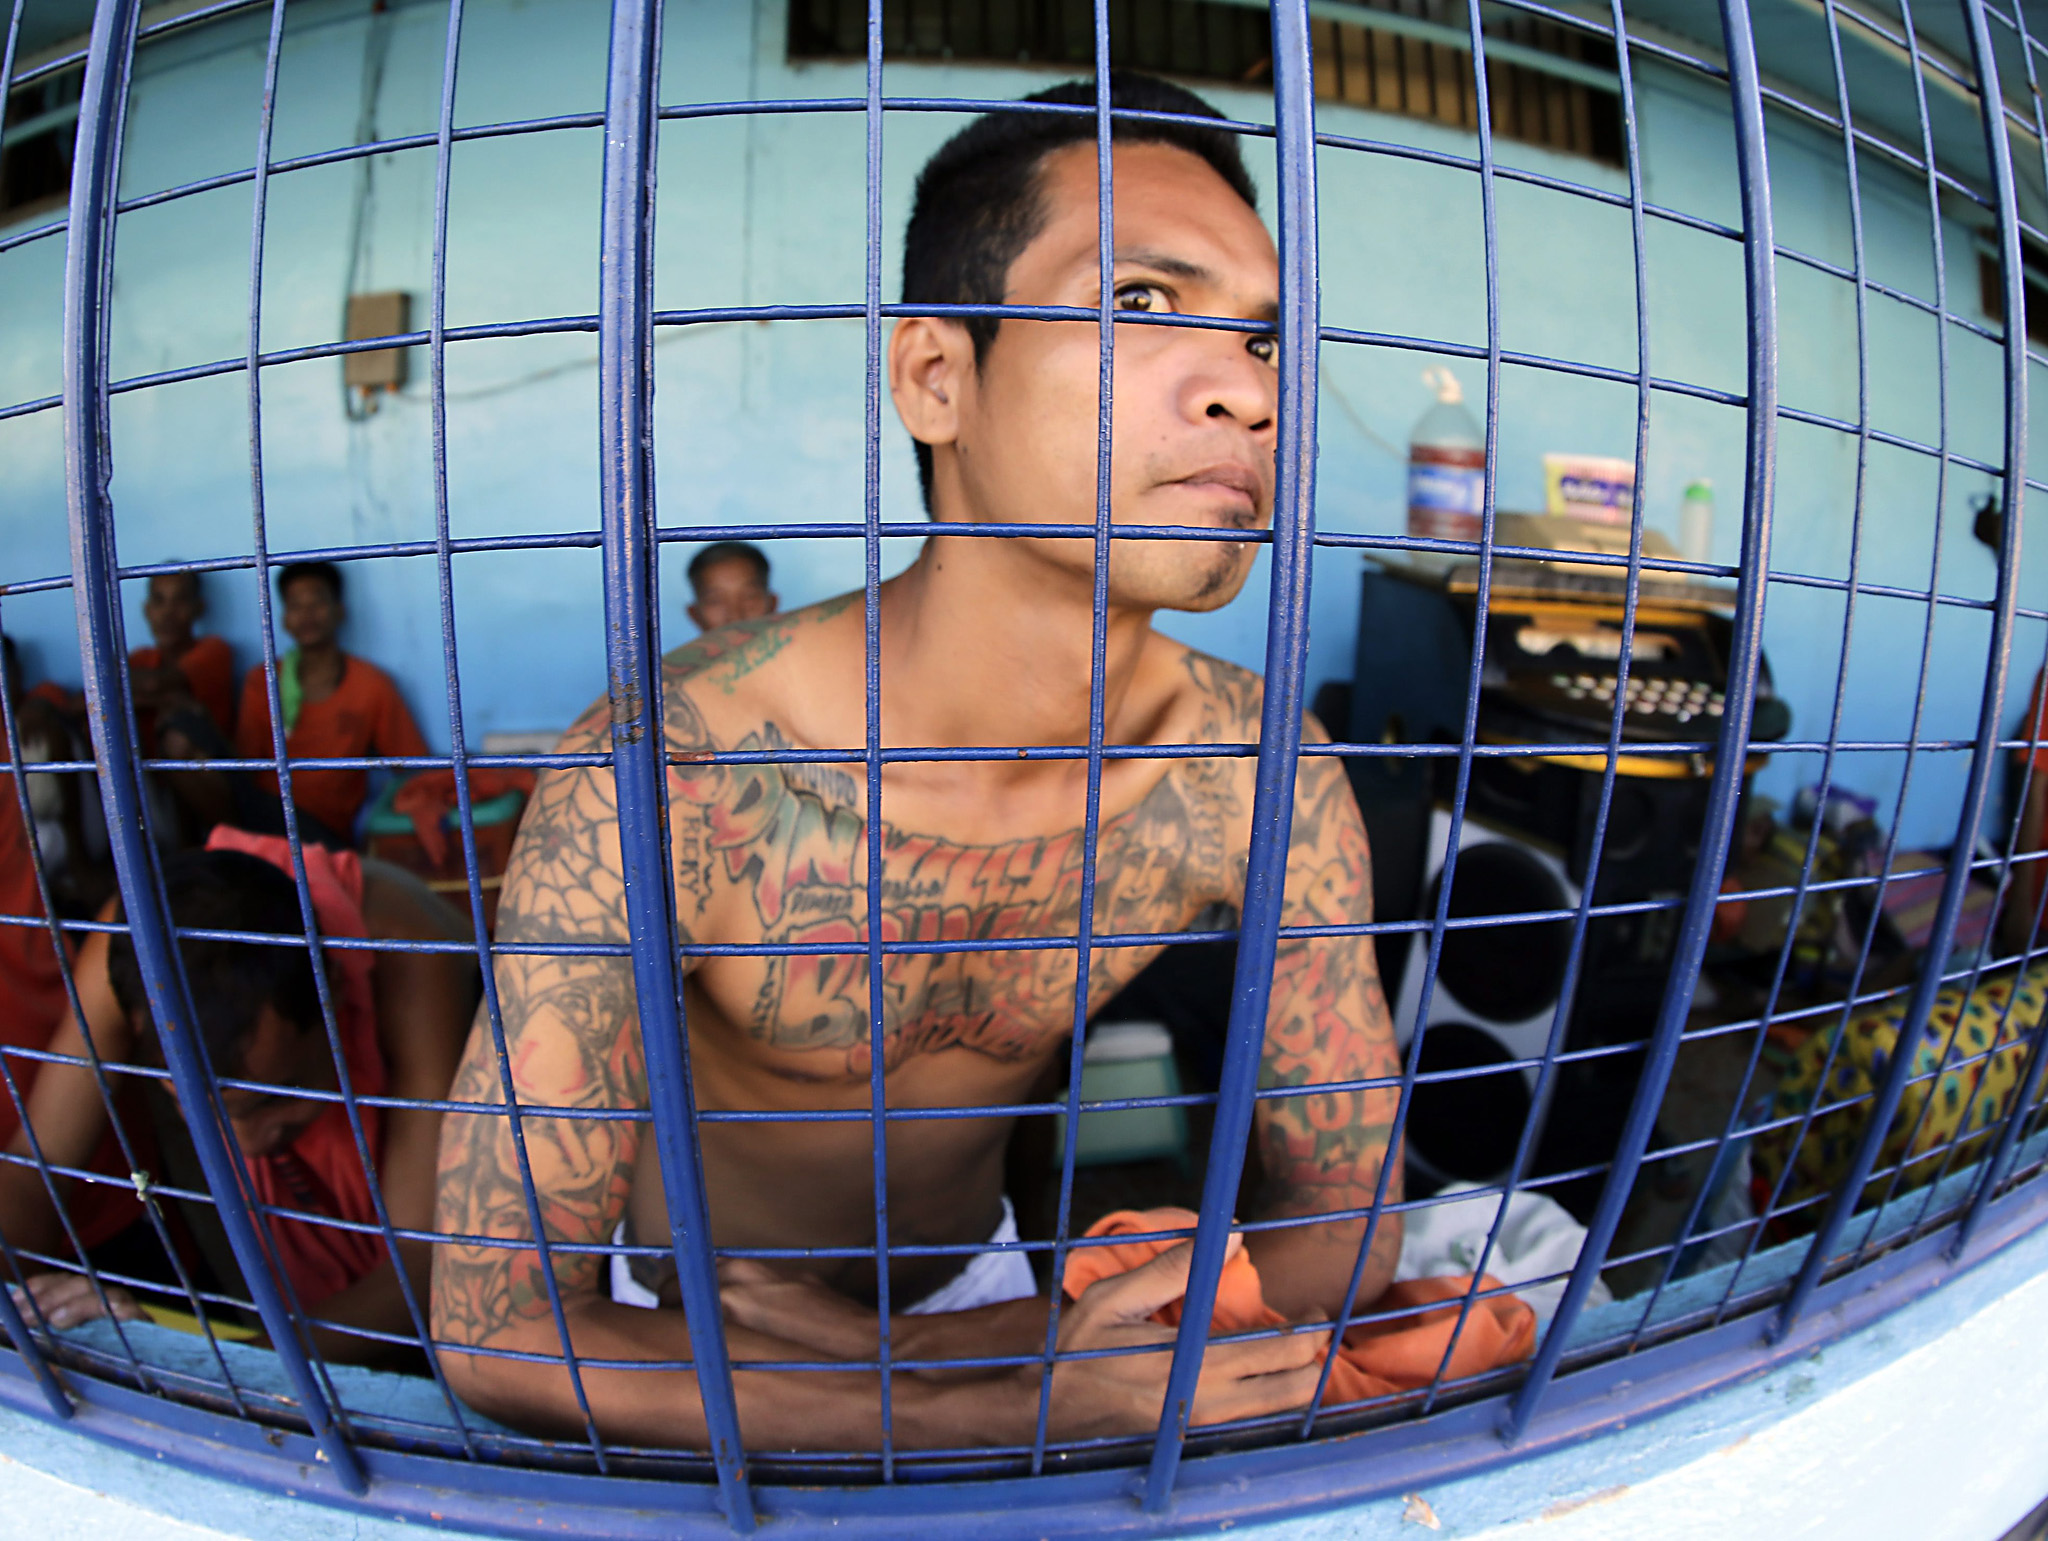 Prohibited items confiscated during raid at New Bilibid Prison in Muntinlupa...epaselect epa05009936 A Filipino inmate is seen inside a jail following a raid at the national prison in Muntinlupa city, south of Manila, Philippines, 04 November 2015. Joint forces from the Bureau of Corrections, Philippine Drug Enforcement Agency, and the National Bureau of Investigation found rifles, pistols, knives, bullets, refrigerators, televisions, drug paraphernalia, and equipment for making liquor, power tools, and cellphones from inmates at the maximum security compound of the National 'New Bilibid' Prison when they conducted a raid, according to a news report.  EPA/FRANCIS R. MALASIG